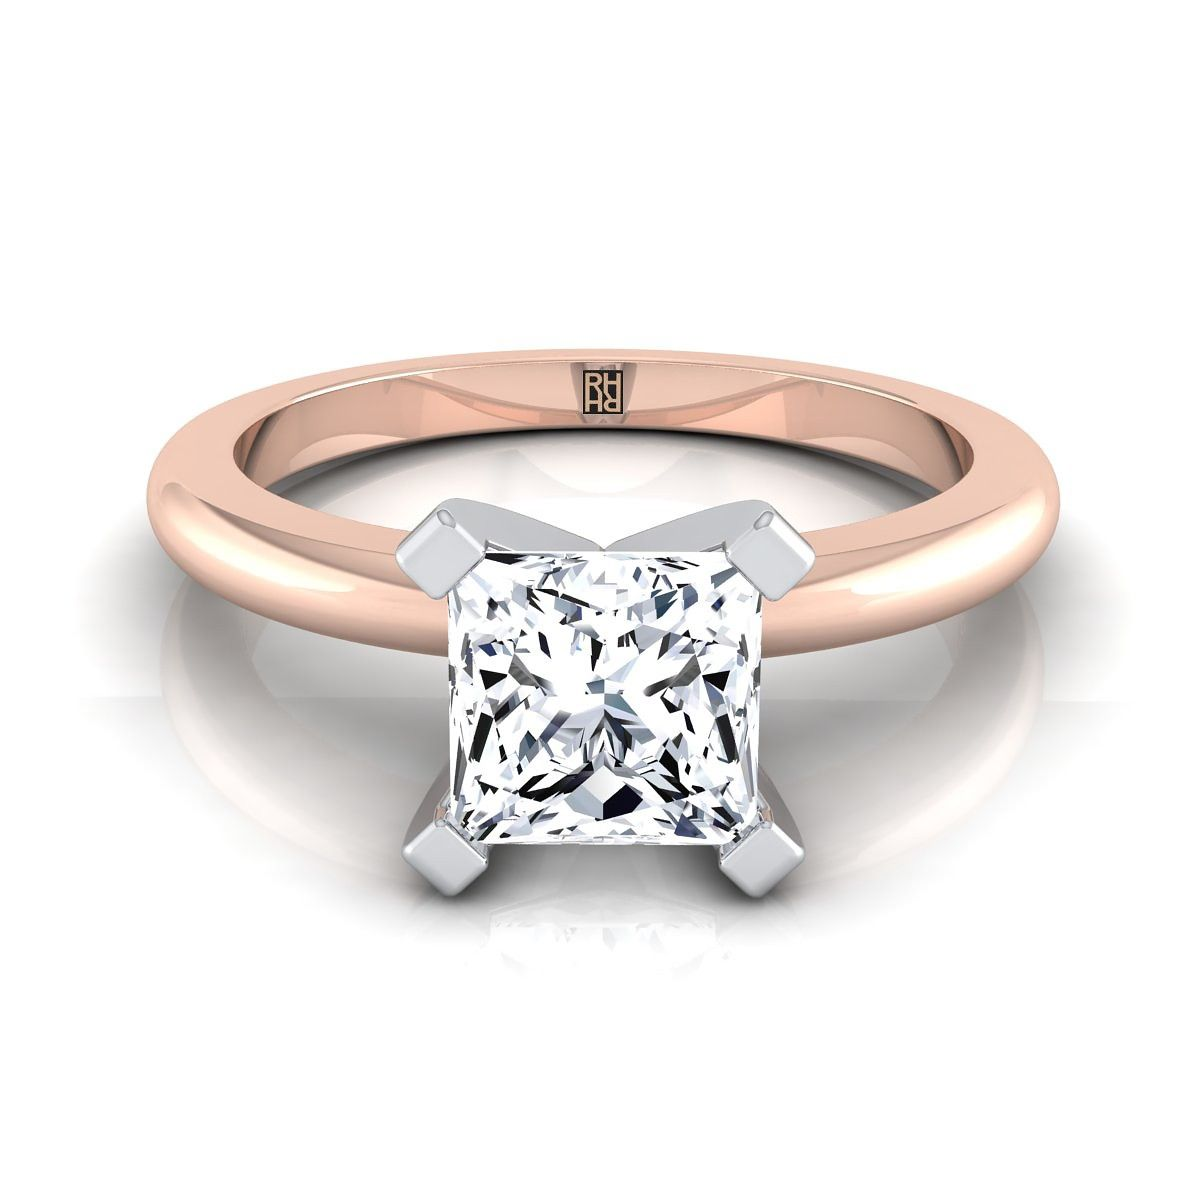 prong princess cut solitaire engagement ring with petite rounded